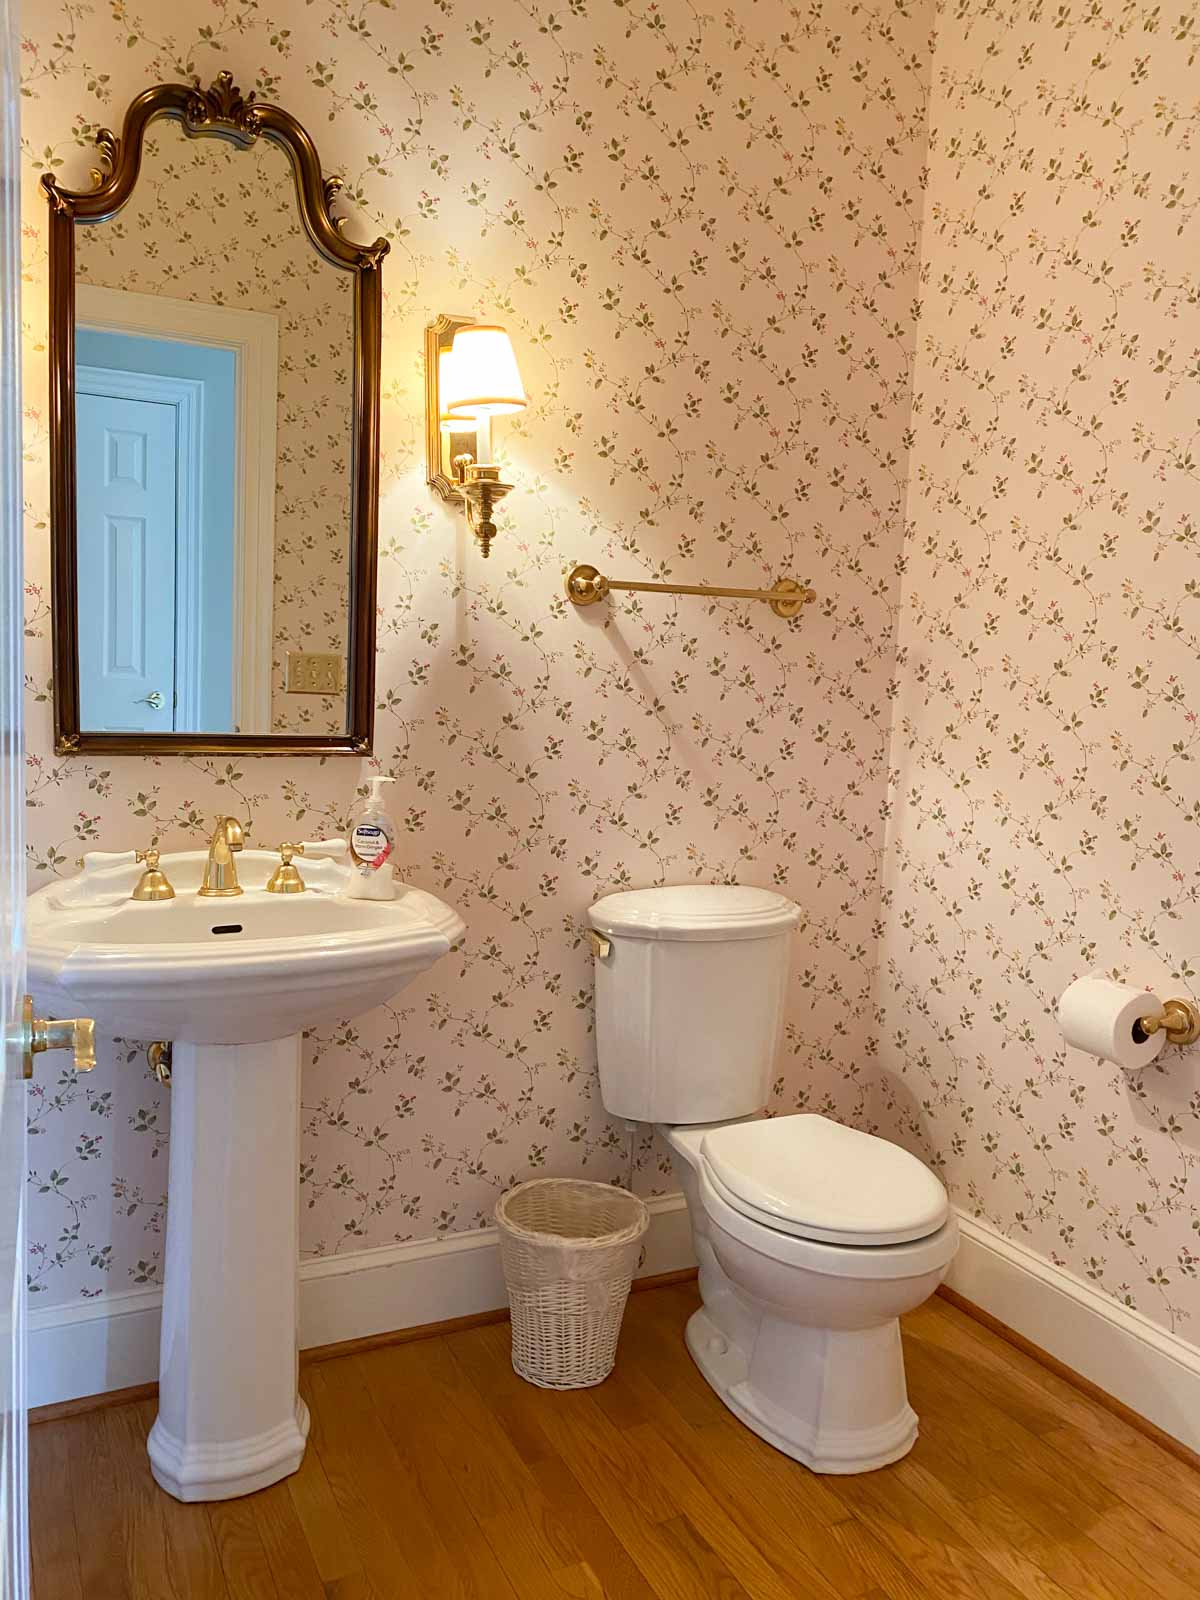 Our powder room before remodeling